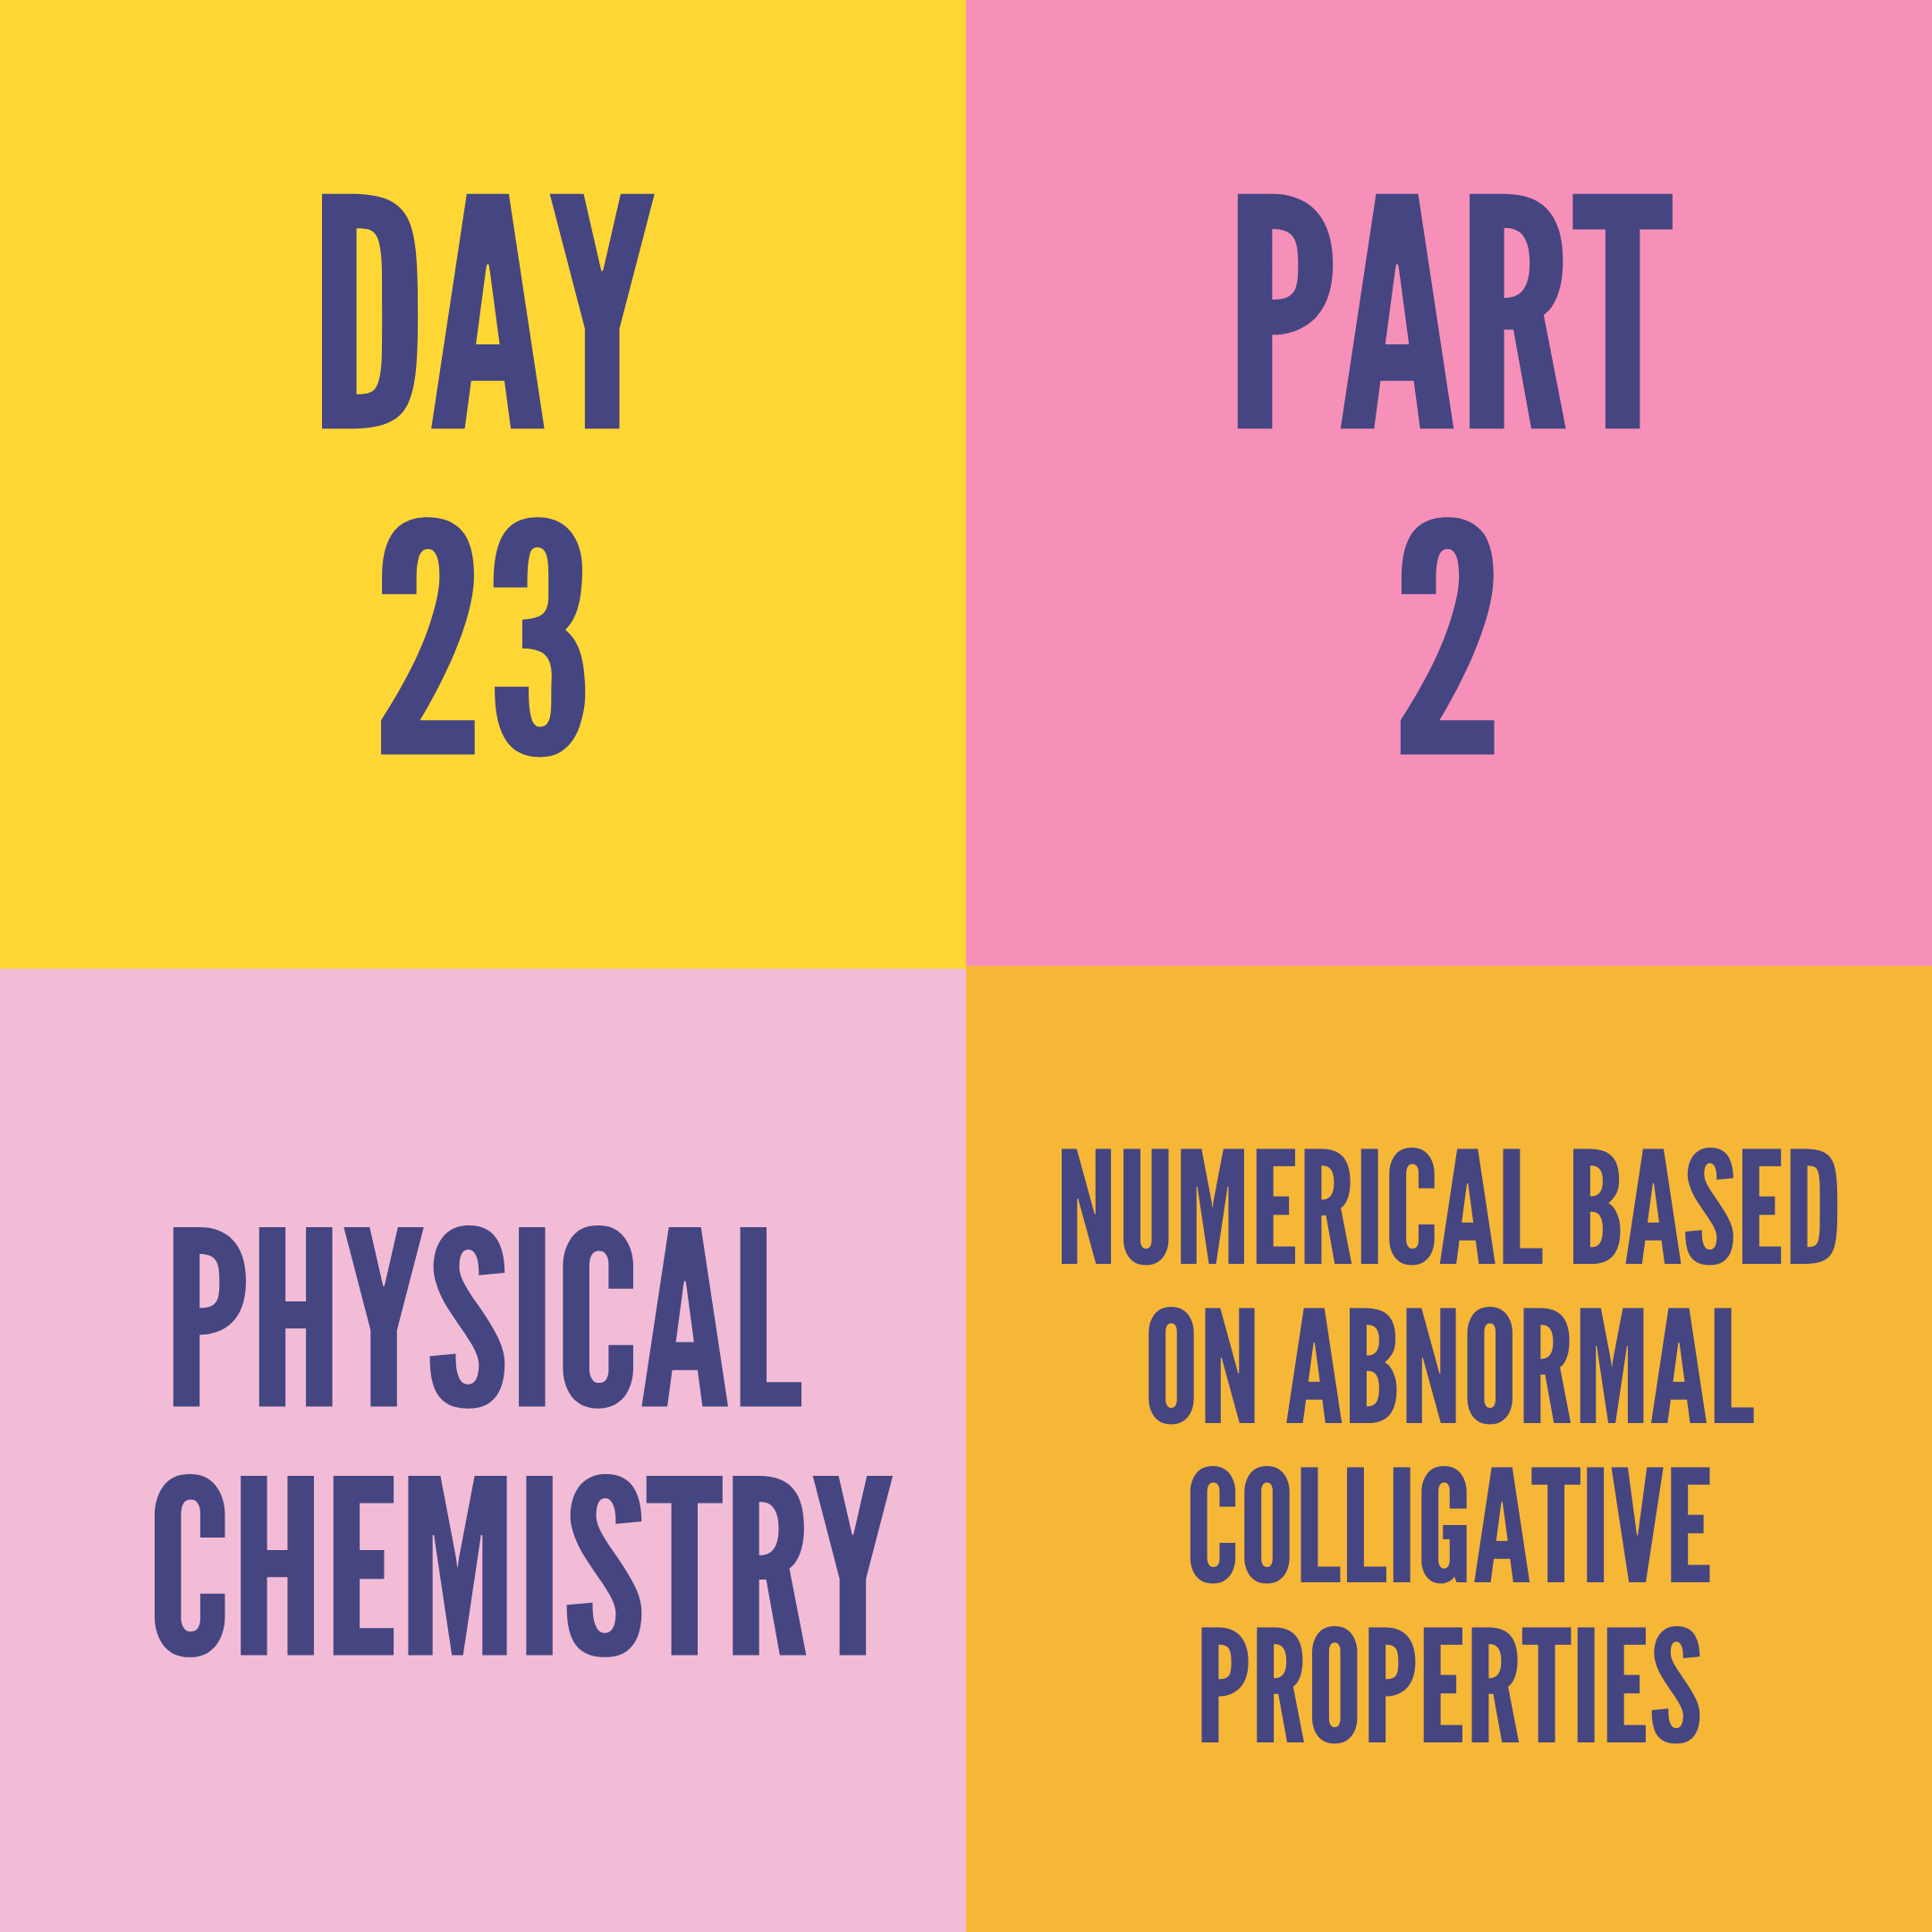 DAY-23 PART-2 NUMERICAL BASED ON ABNORMAL COLLIGATIVE PROPERTIES